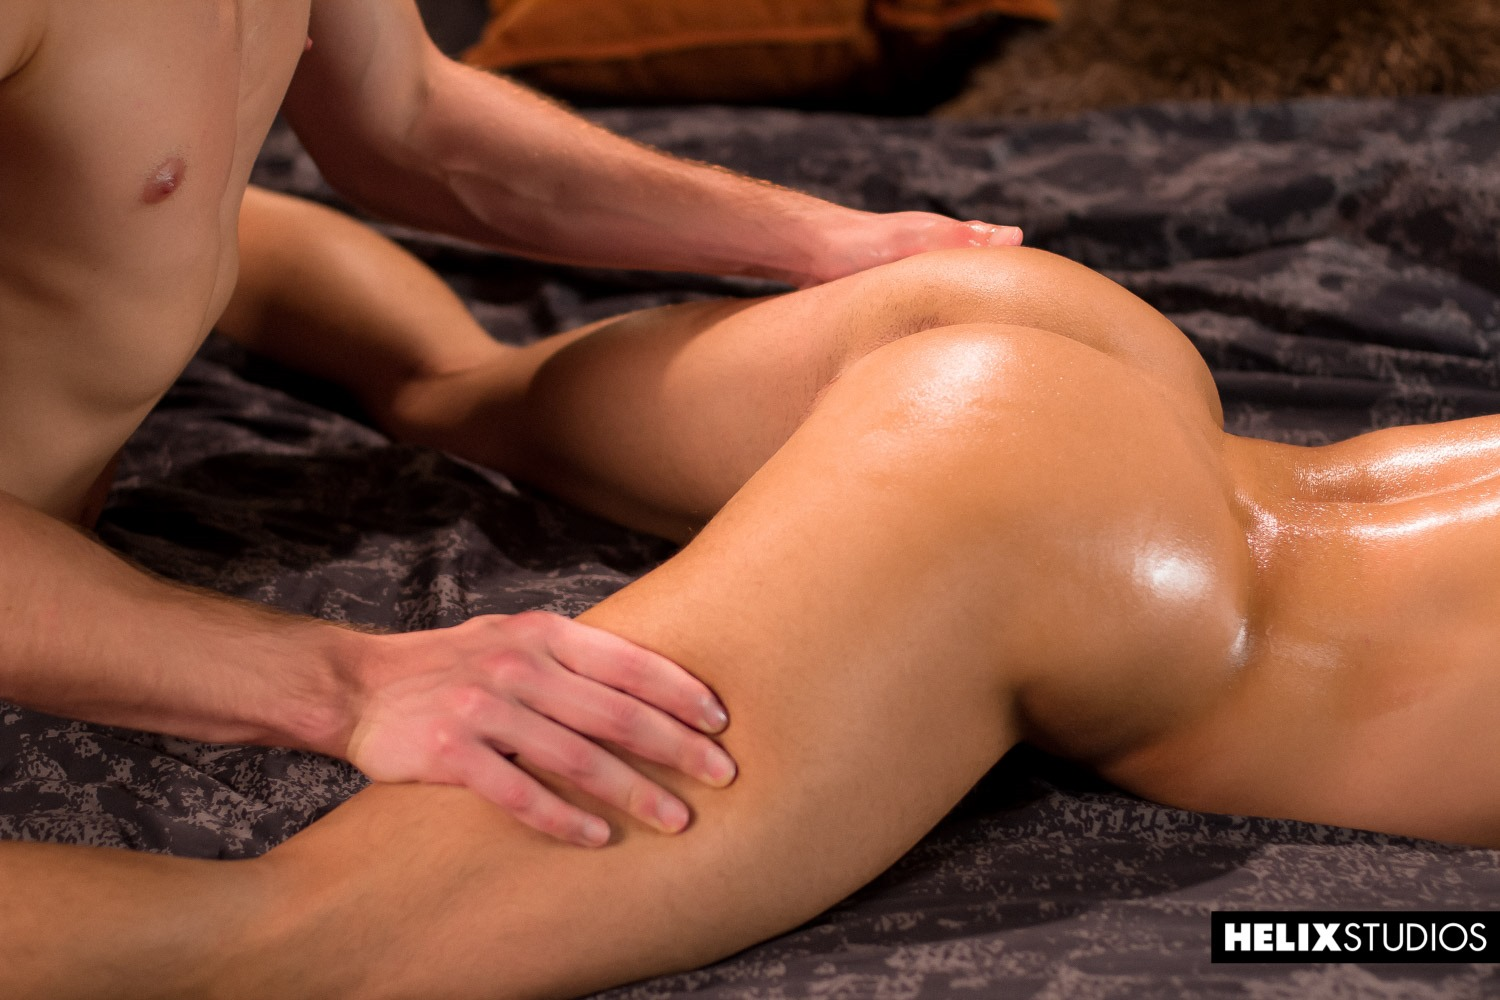 Ass boys massage gay collin exposes the 6